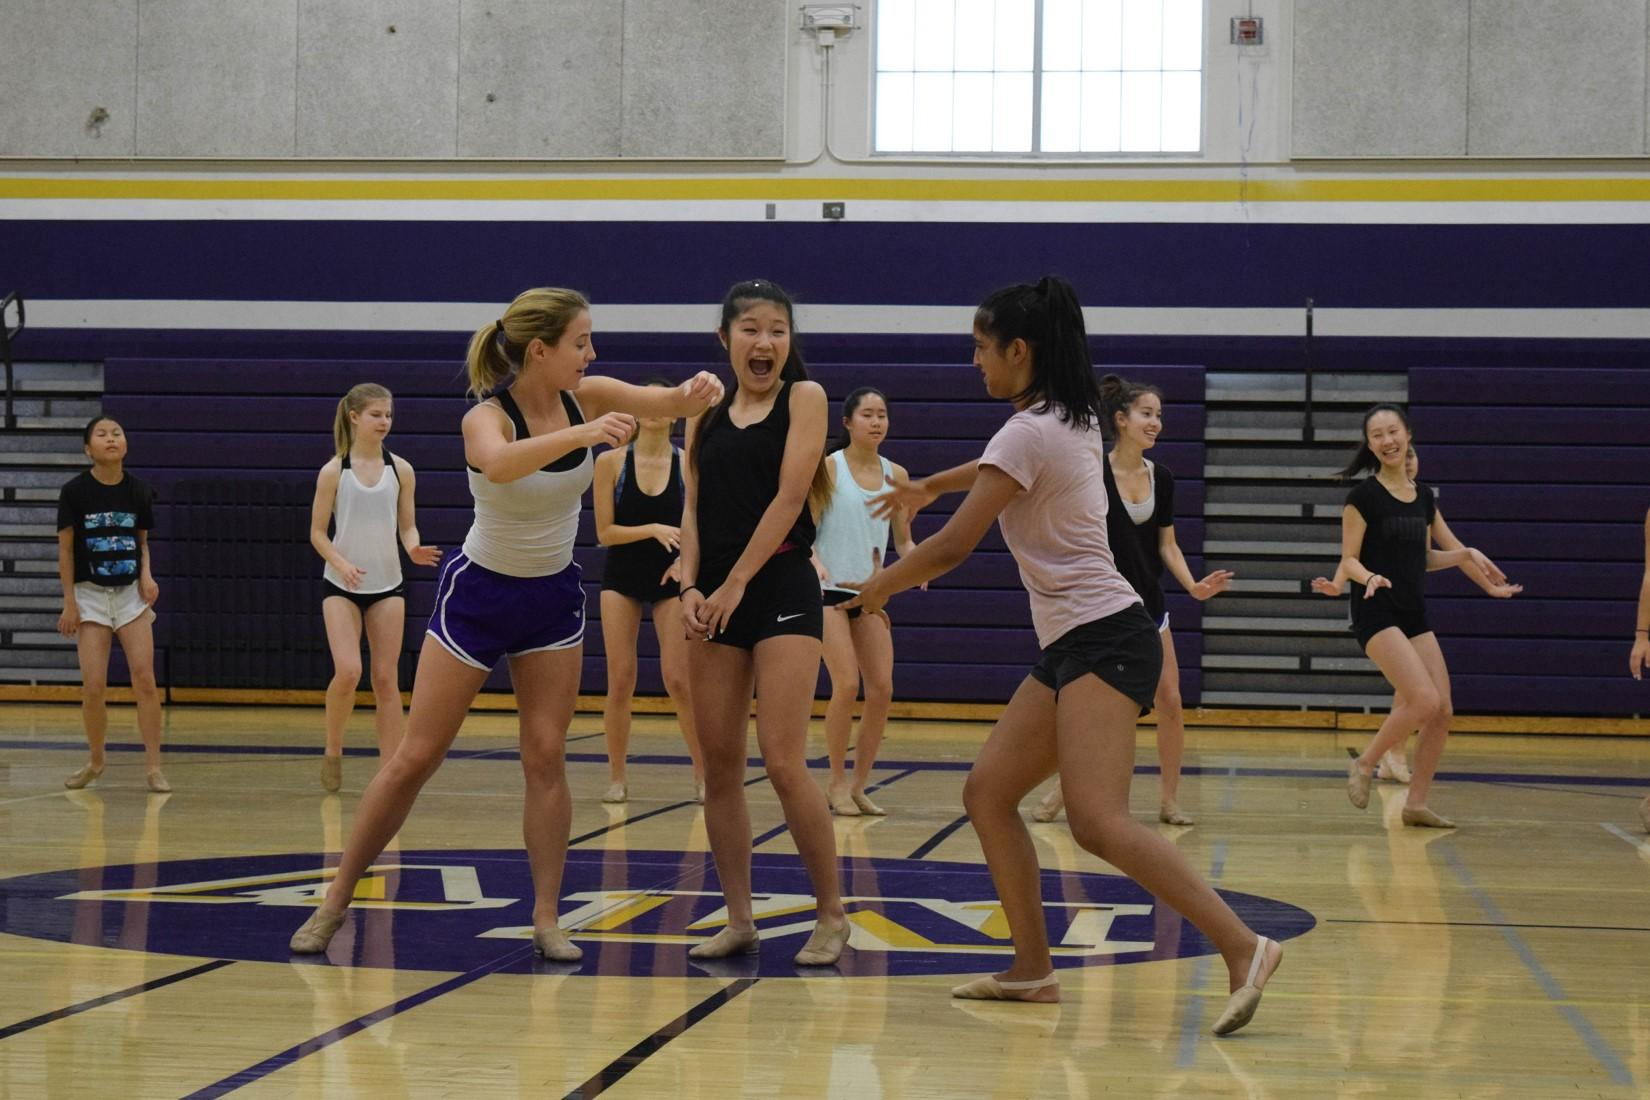 Junior Jessica Kimm and seniors Linnea Cheek and Riona Guha, who is a captain for the Marquesas, rehearse a section of the routine. The humorous choreography gave the Marquesas the chance to show a sense of camaraderie in their team throughout their dance.